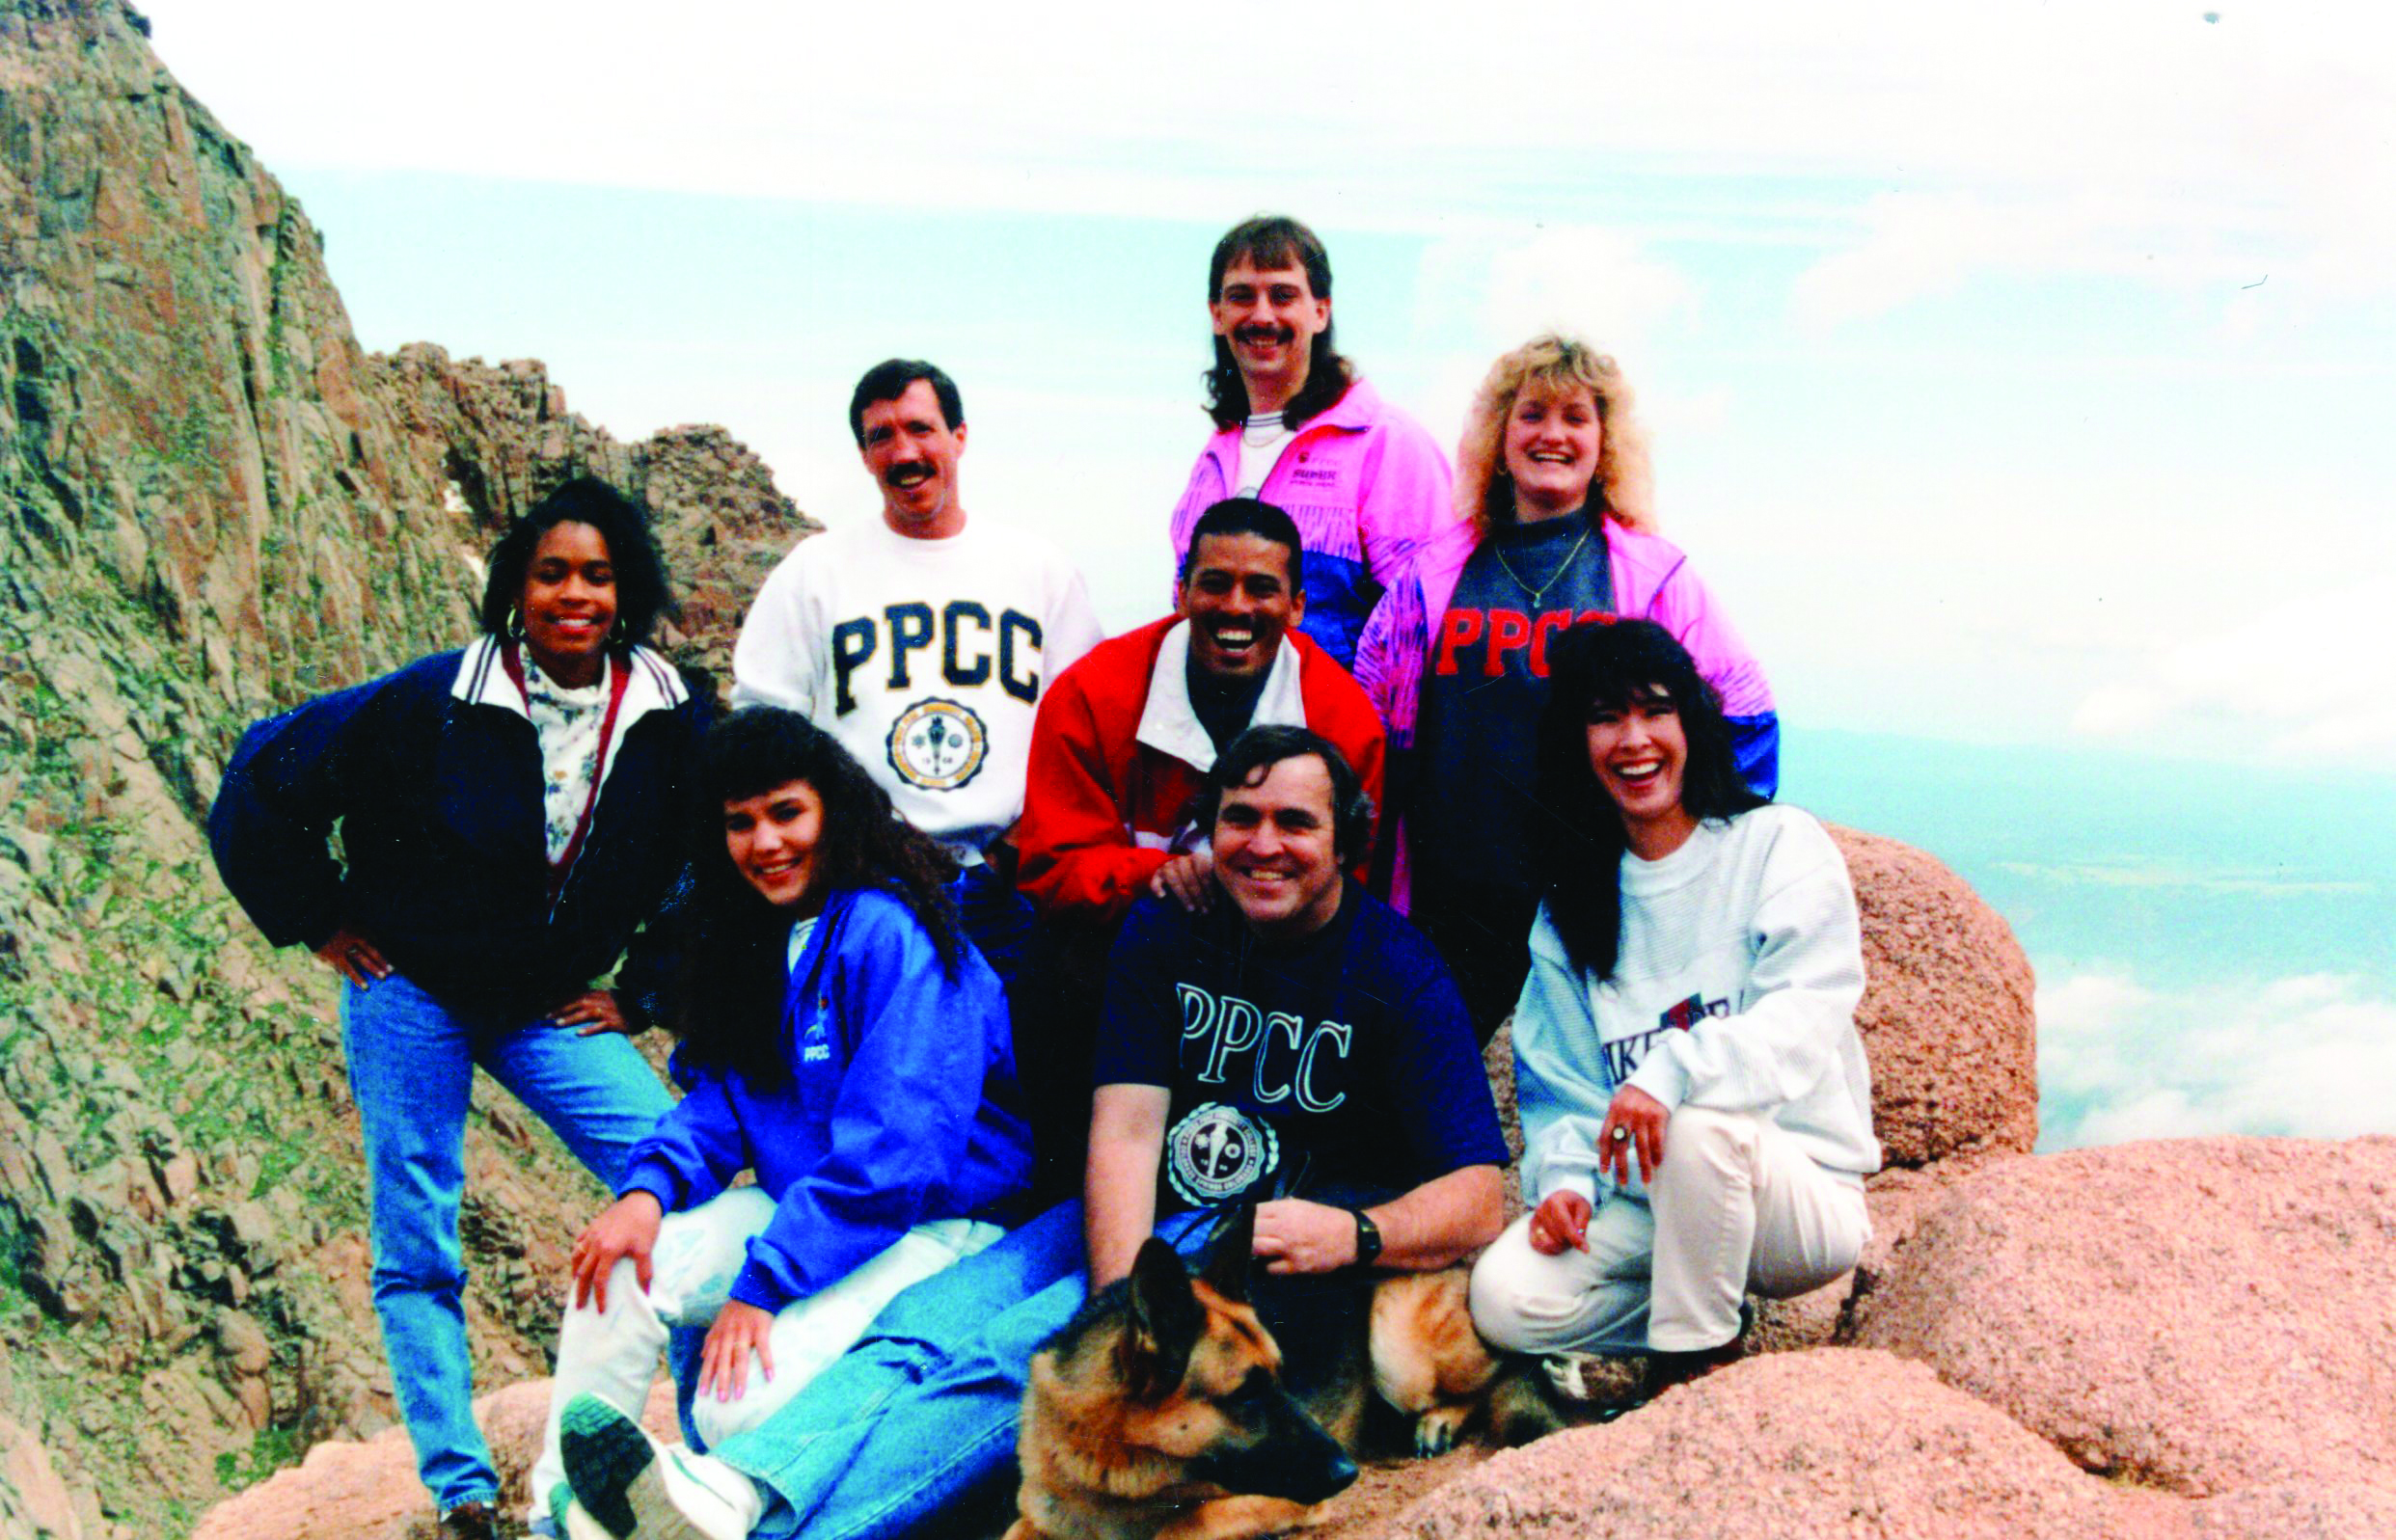 Students at Pikes Peak